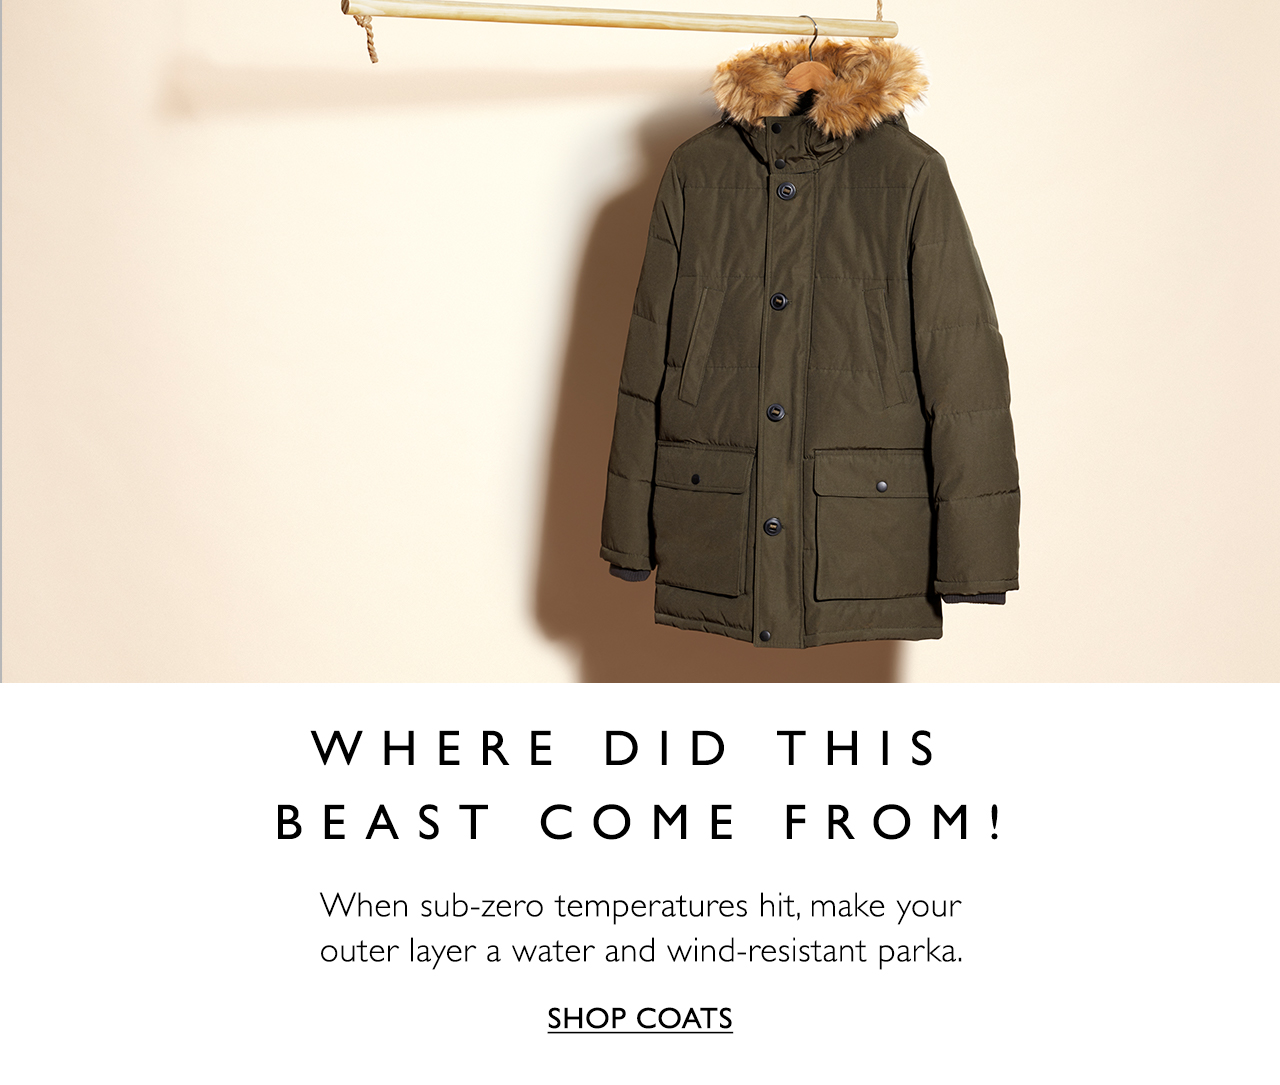 Where did this beast come from! When sub-zero temperatures hit, make your outer layer a water and wind-resistant parka. Shop coats